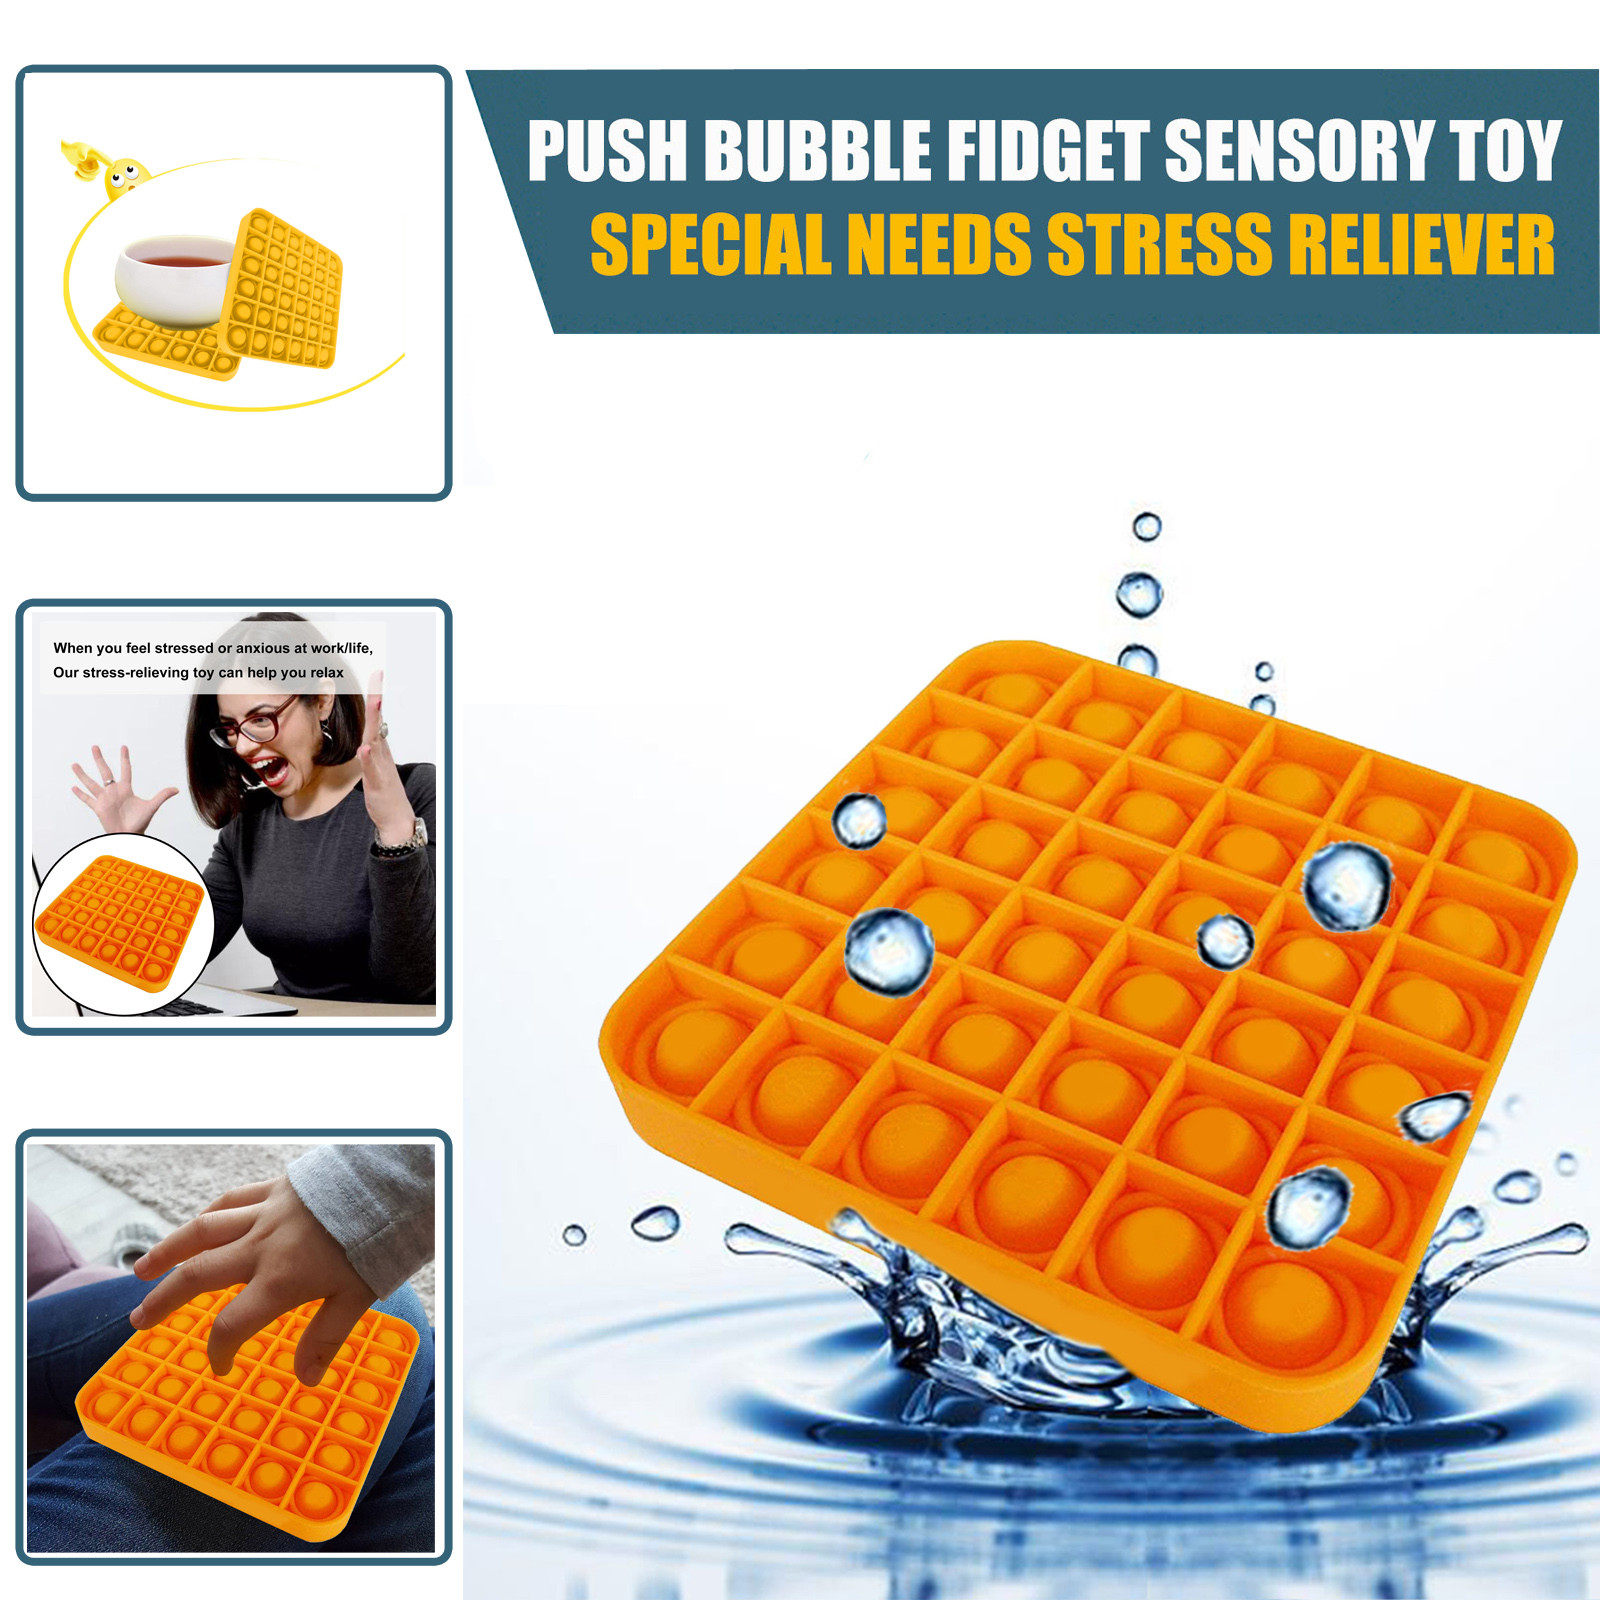 Fitget-Toys Sensory-Toy Autism Fidget Needs-Stress Push Bubble Popoit Special Reliever img5